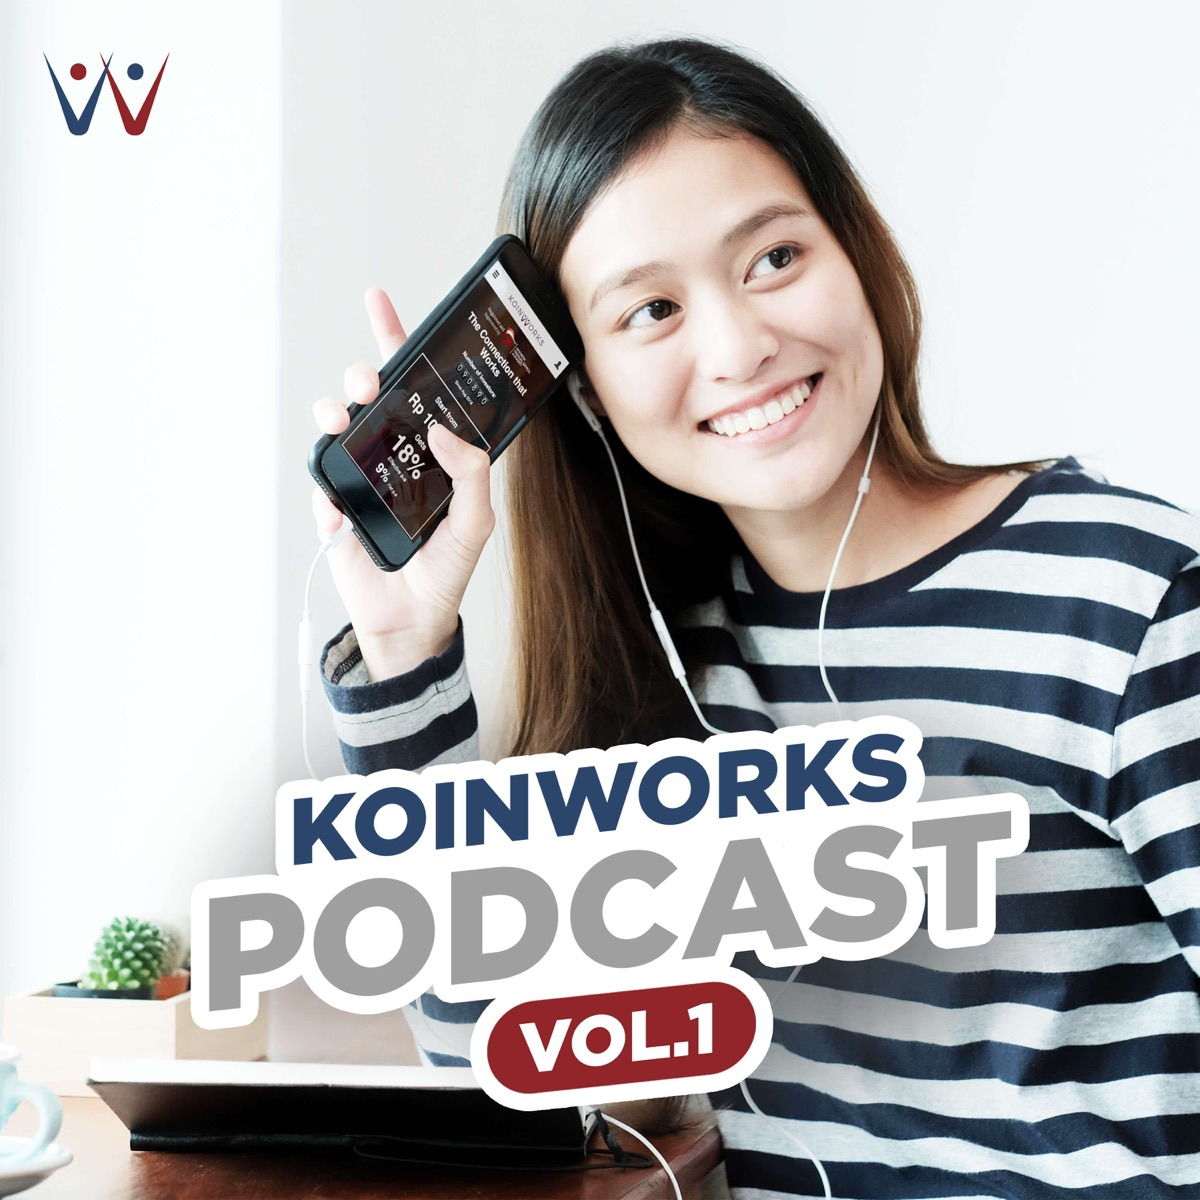 [Podcast Episode #5 ] – Mengenal Dashboard Mendanai di KoinWorks